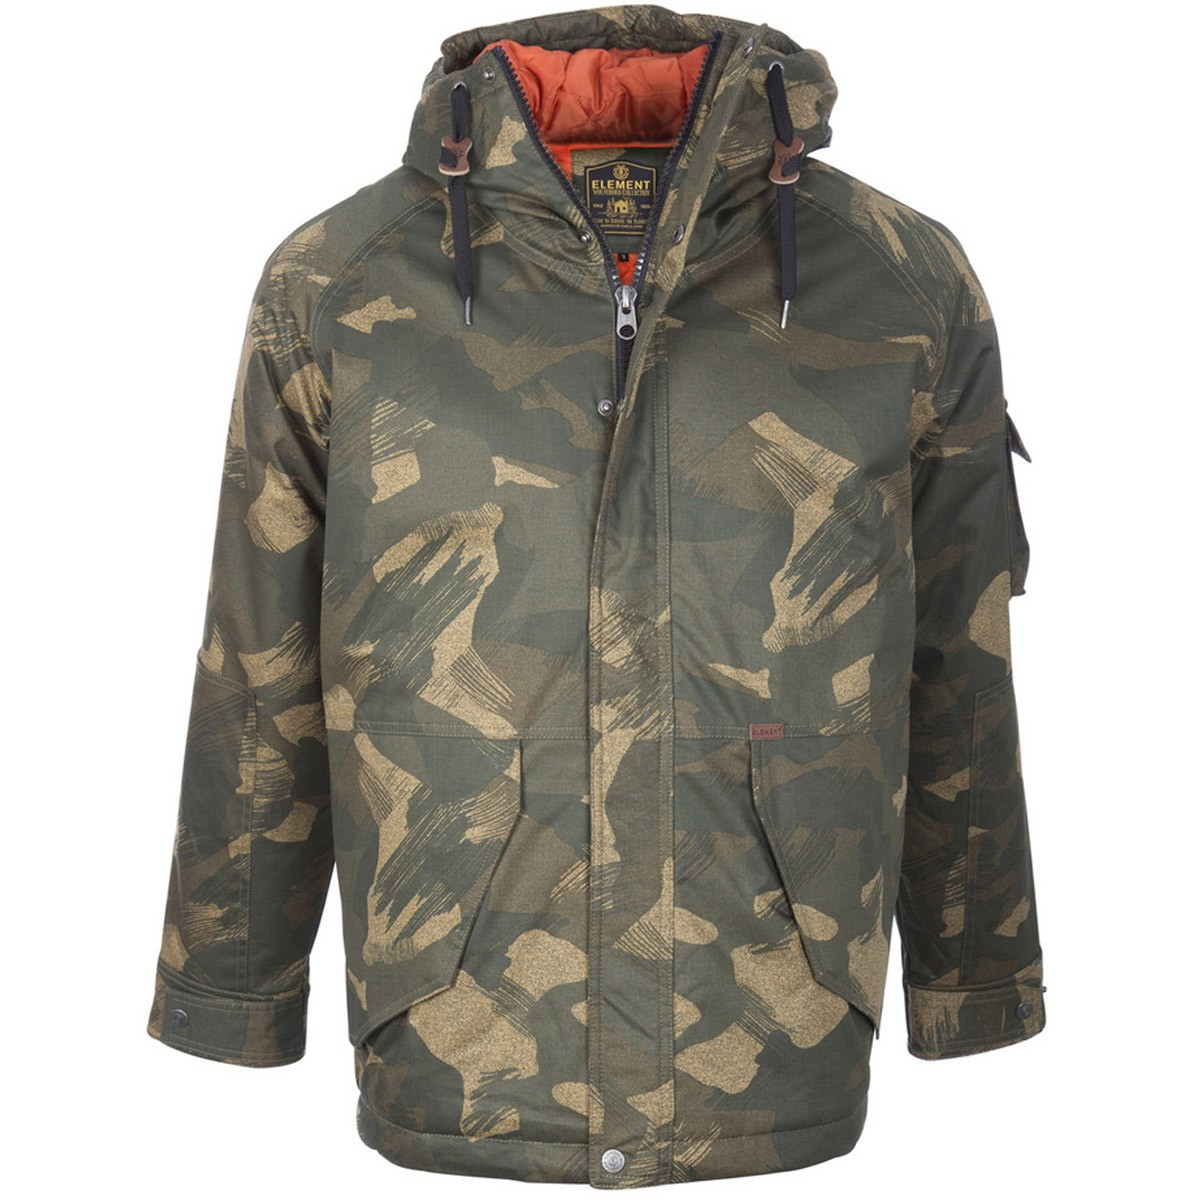 Element Holman Jacket - Camoflauge